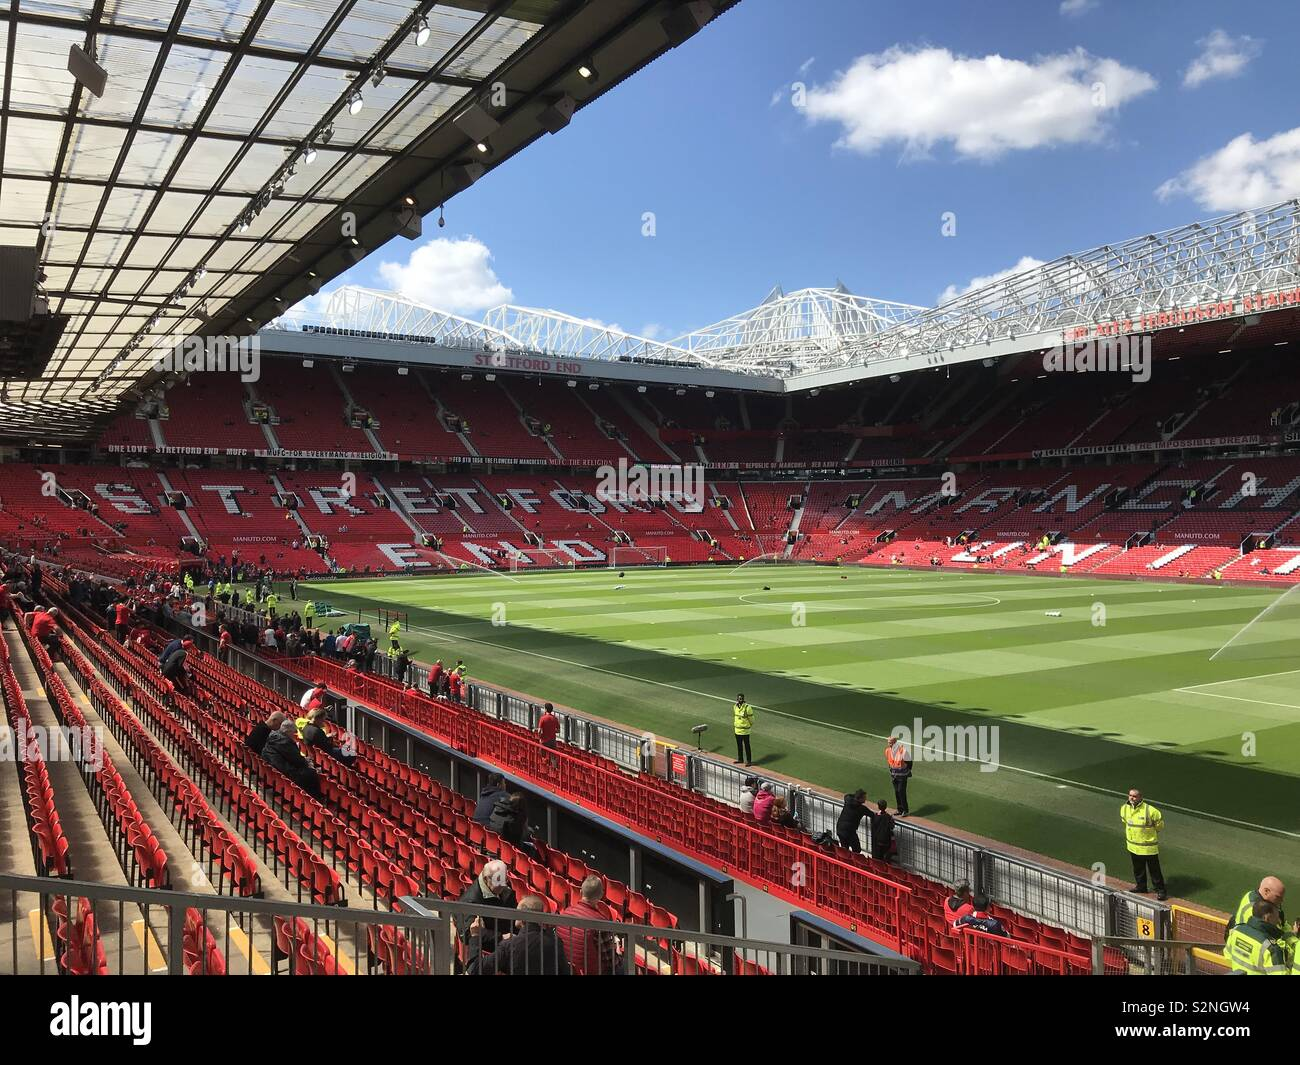 Stretford End Old Trafford - Stock Image